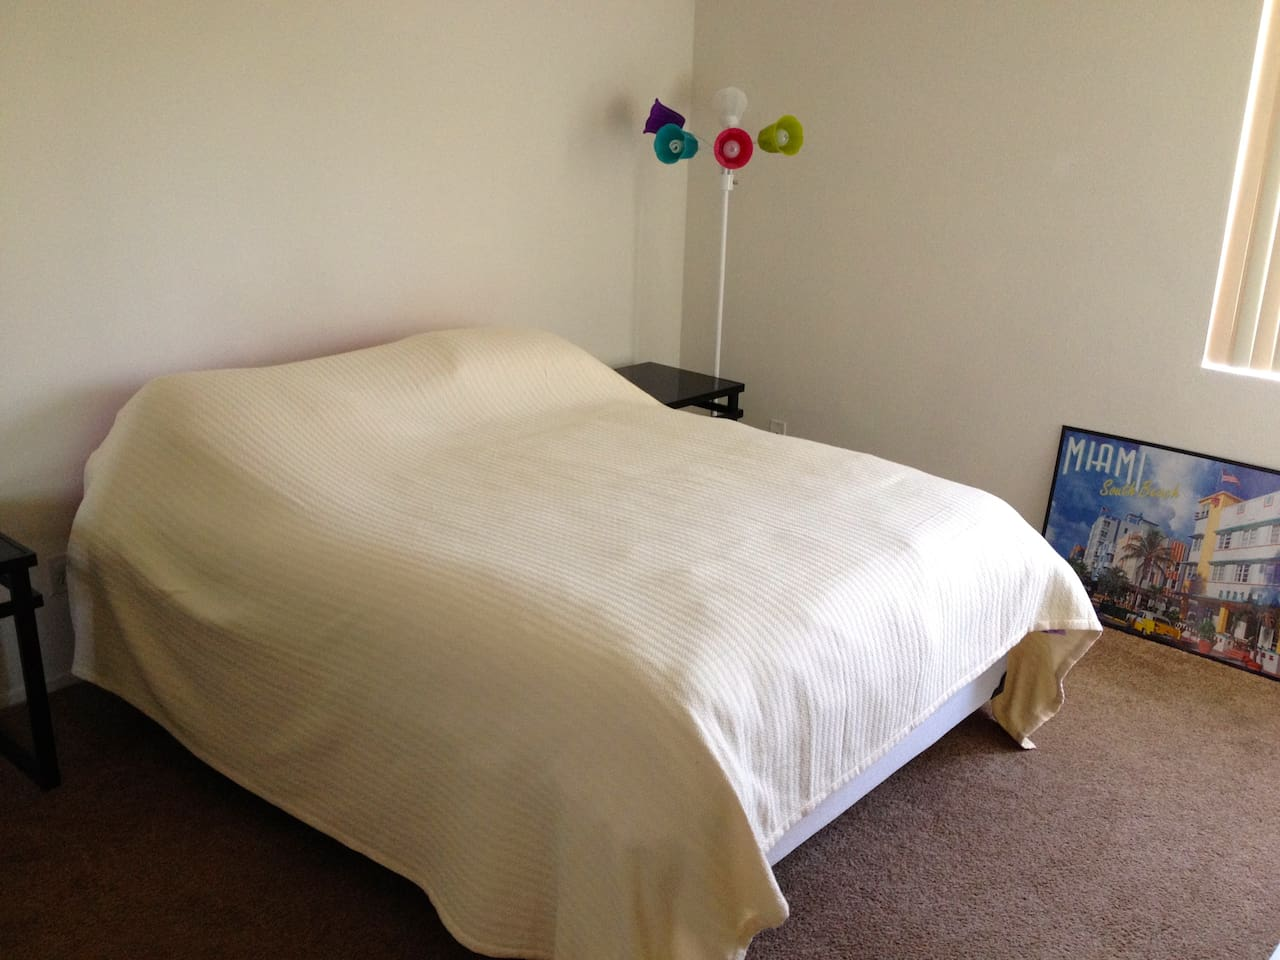 brand new mattress,queen size bed perfect for 2